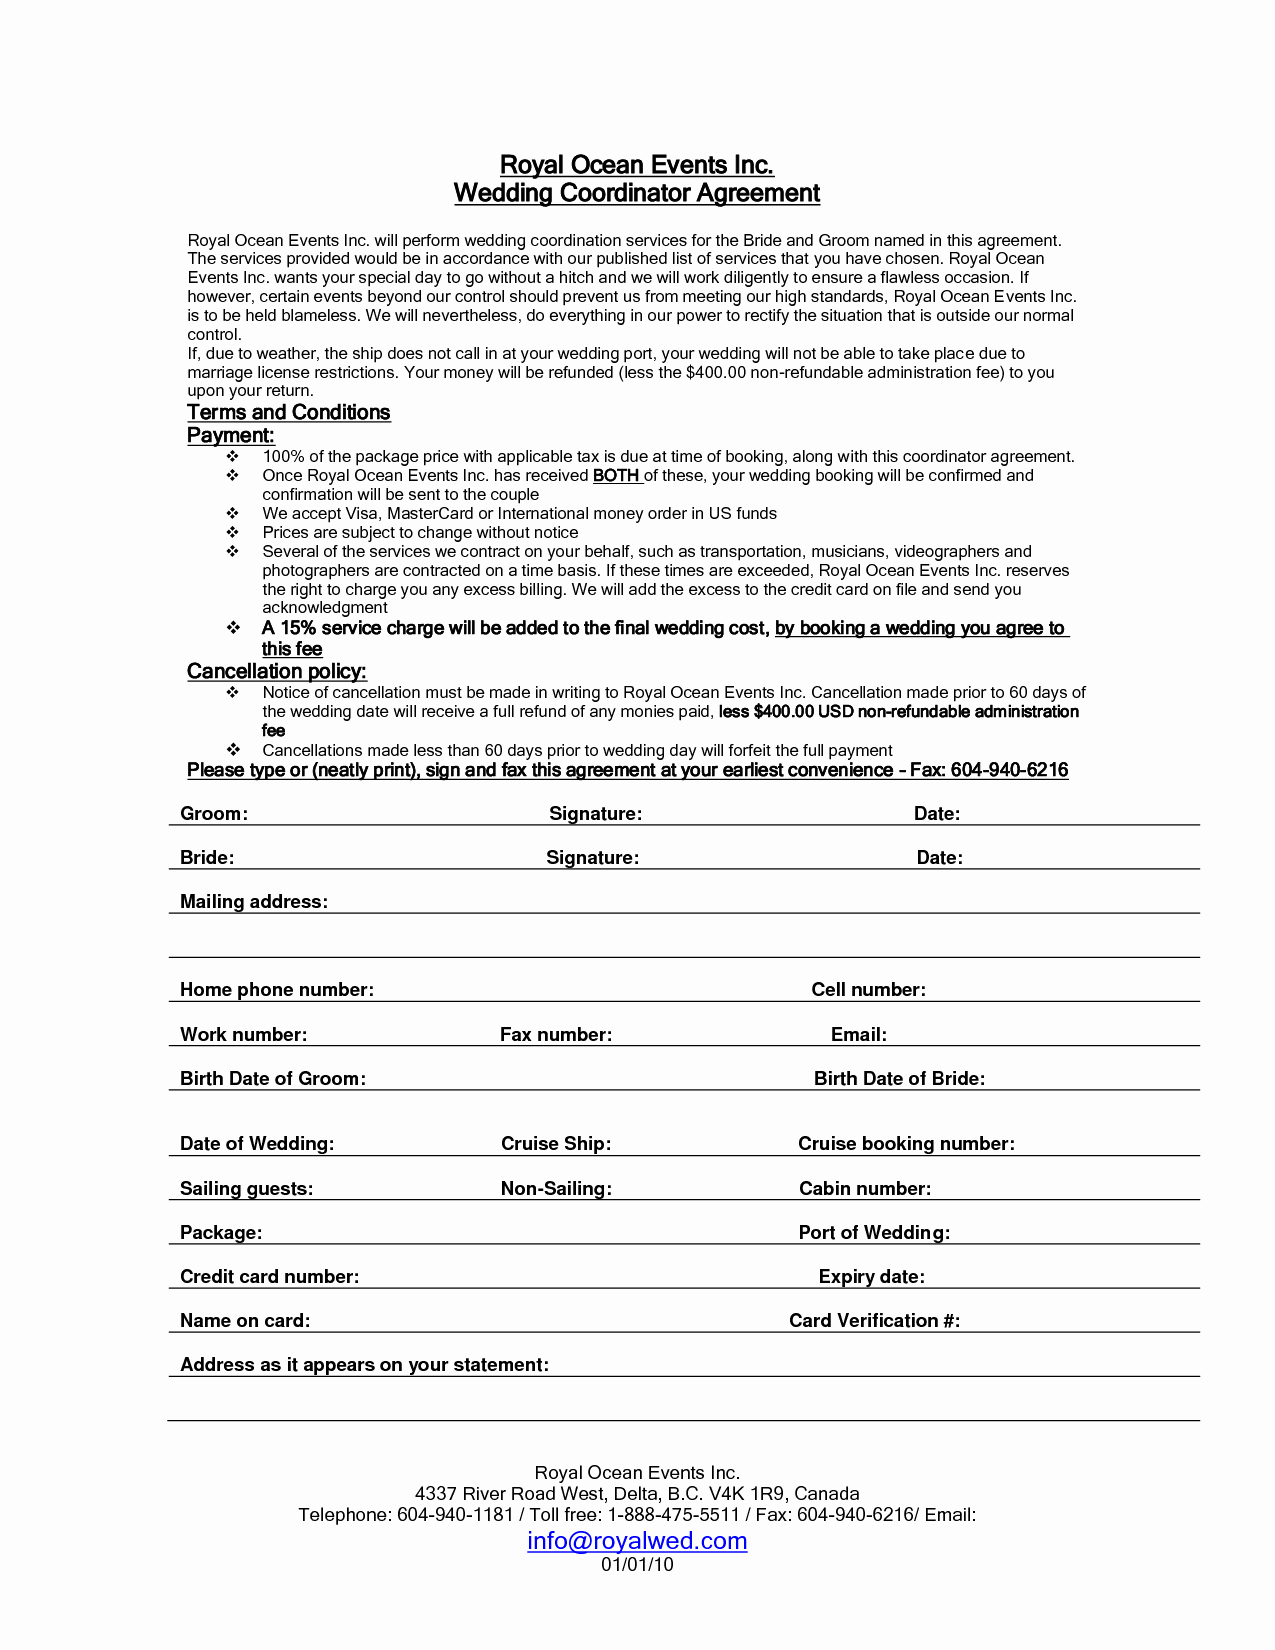 post printable wedding planner contract agreement